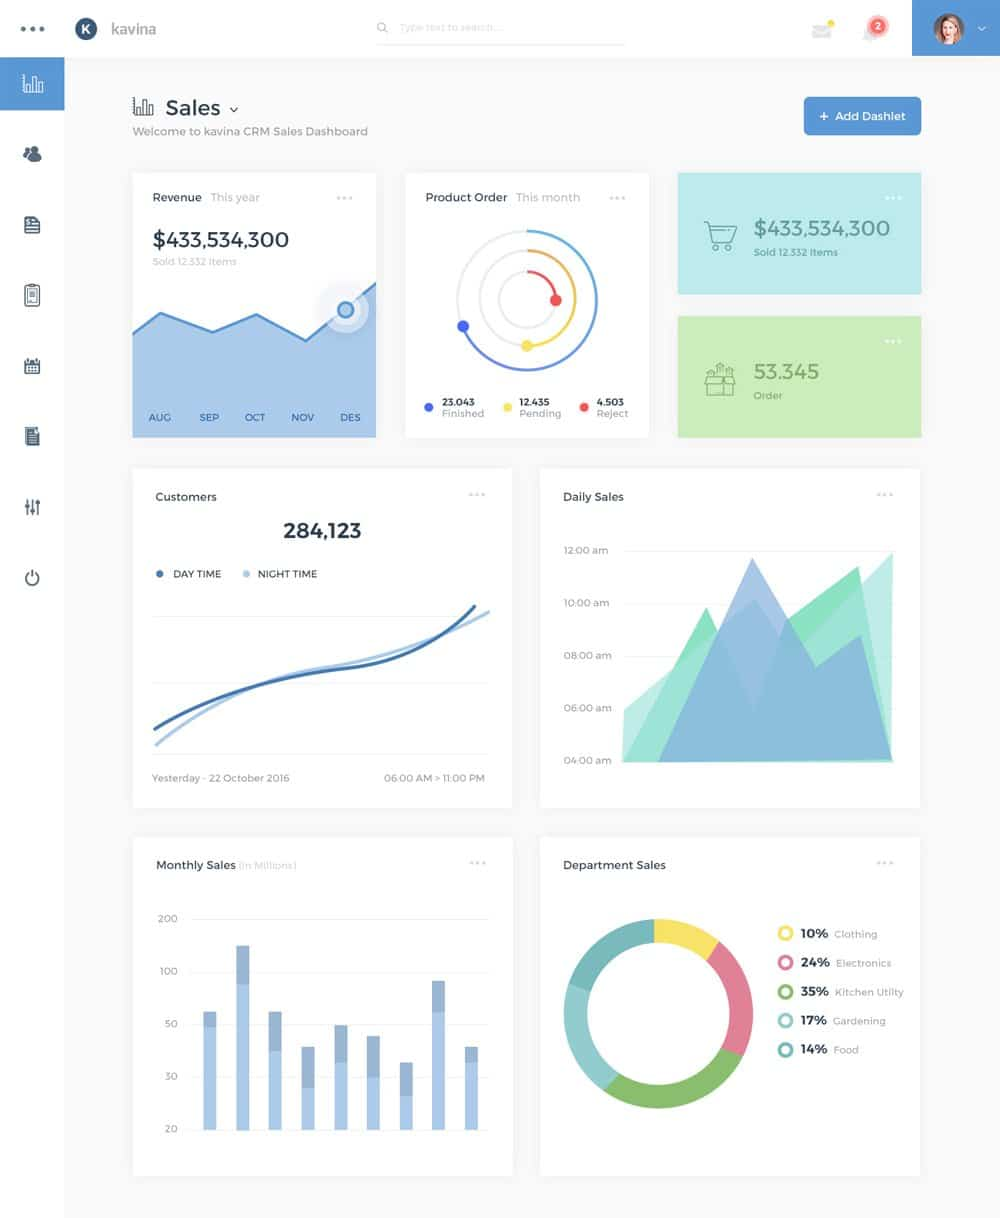 Kavina Dashboard Analytics